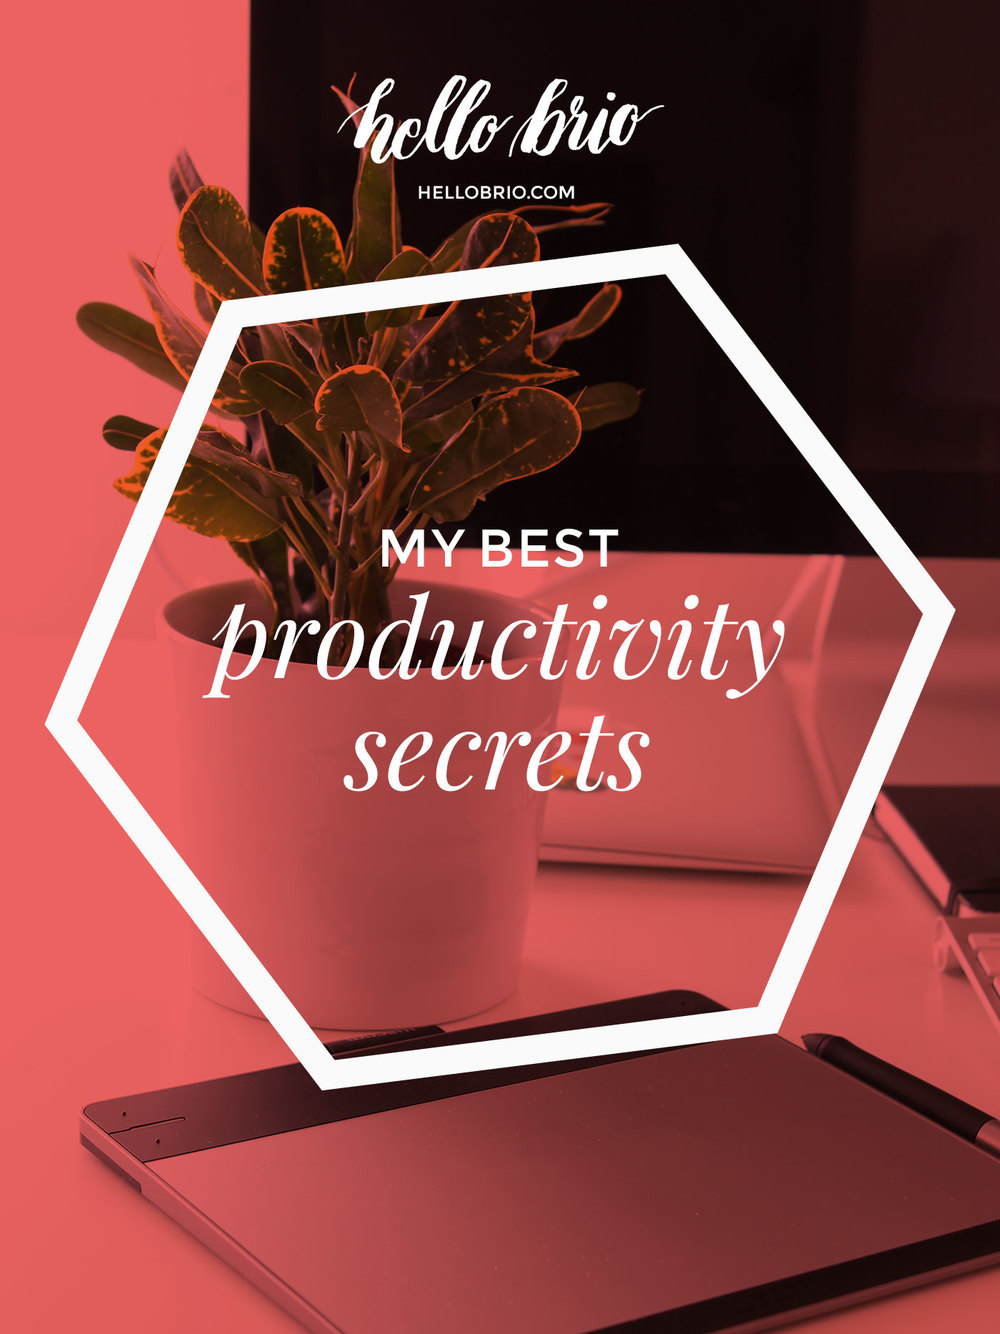 My best productivity secrets